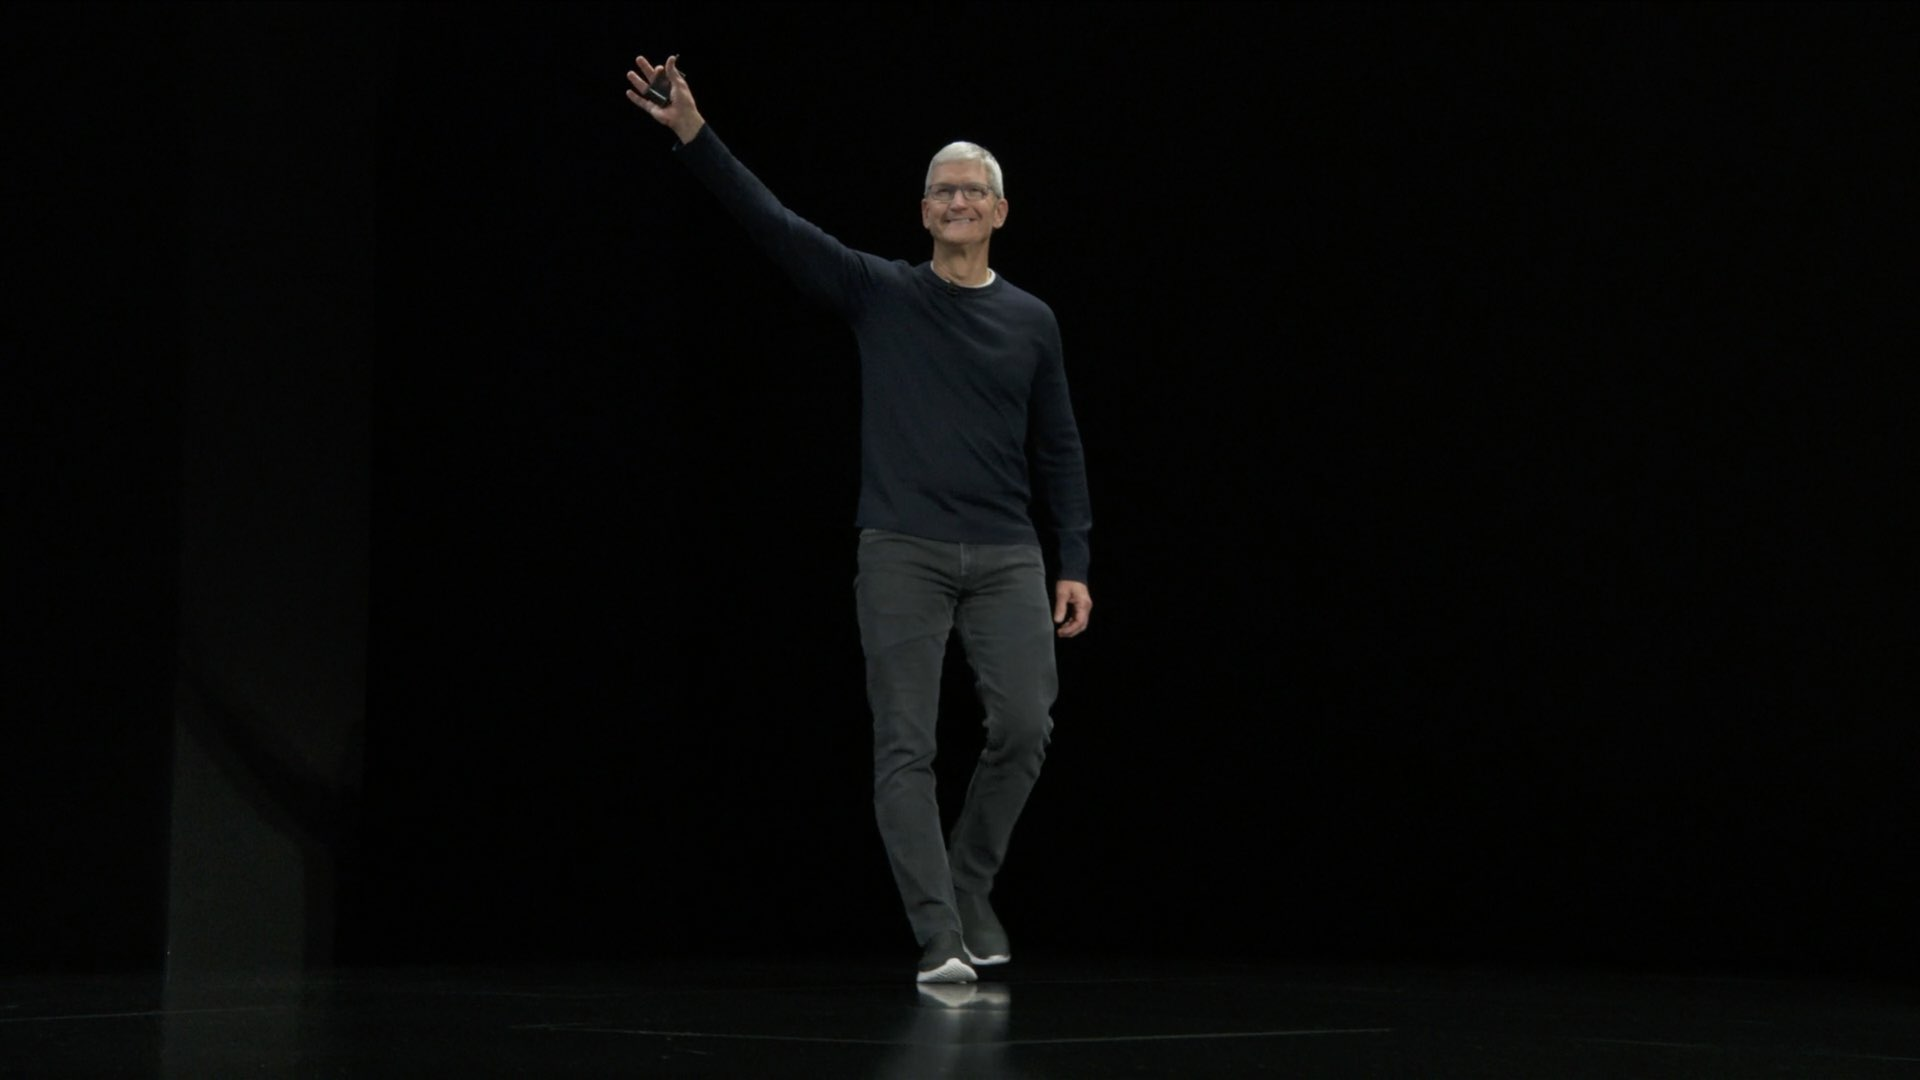 Tim Cook walking on stage and waiving crowds at an Apple product event